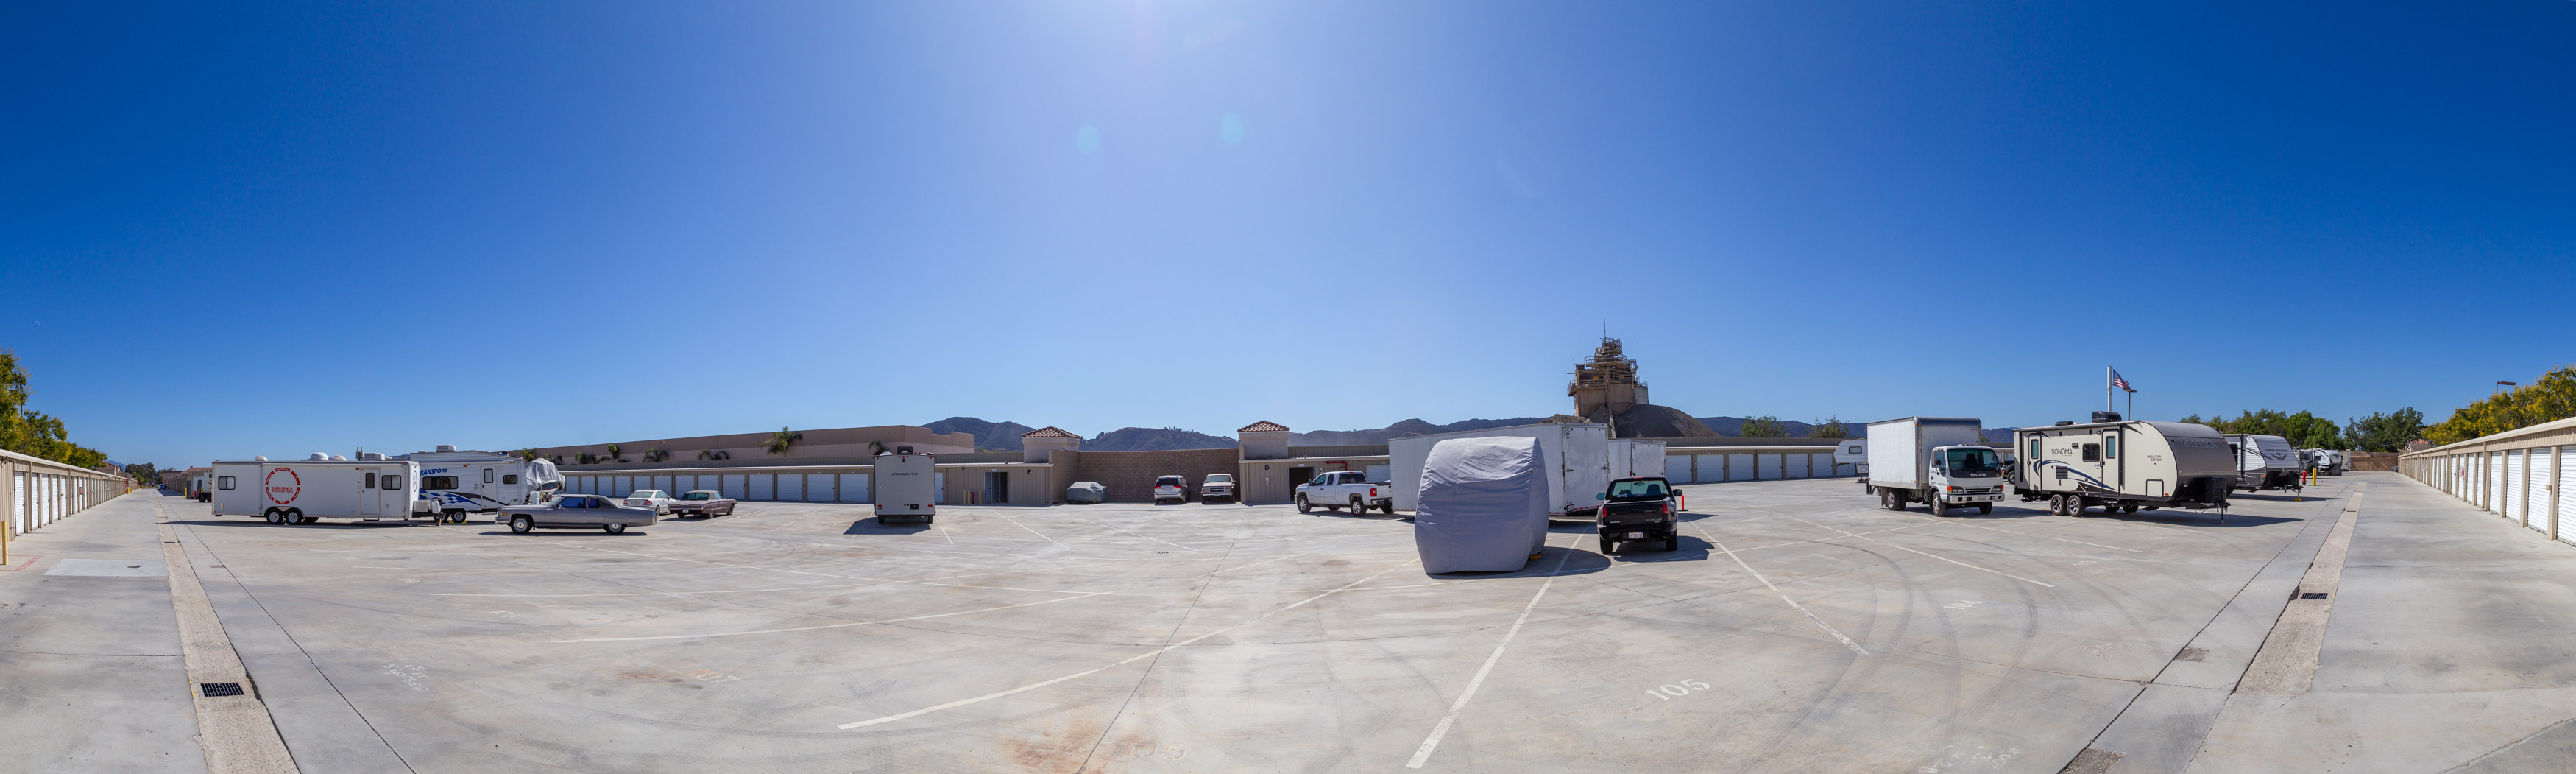 Ranpac Self Storage Elm St. Murrieta CA